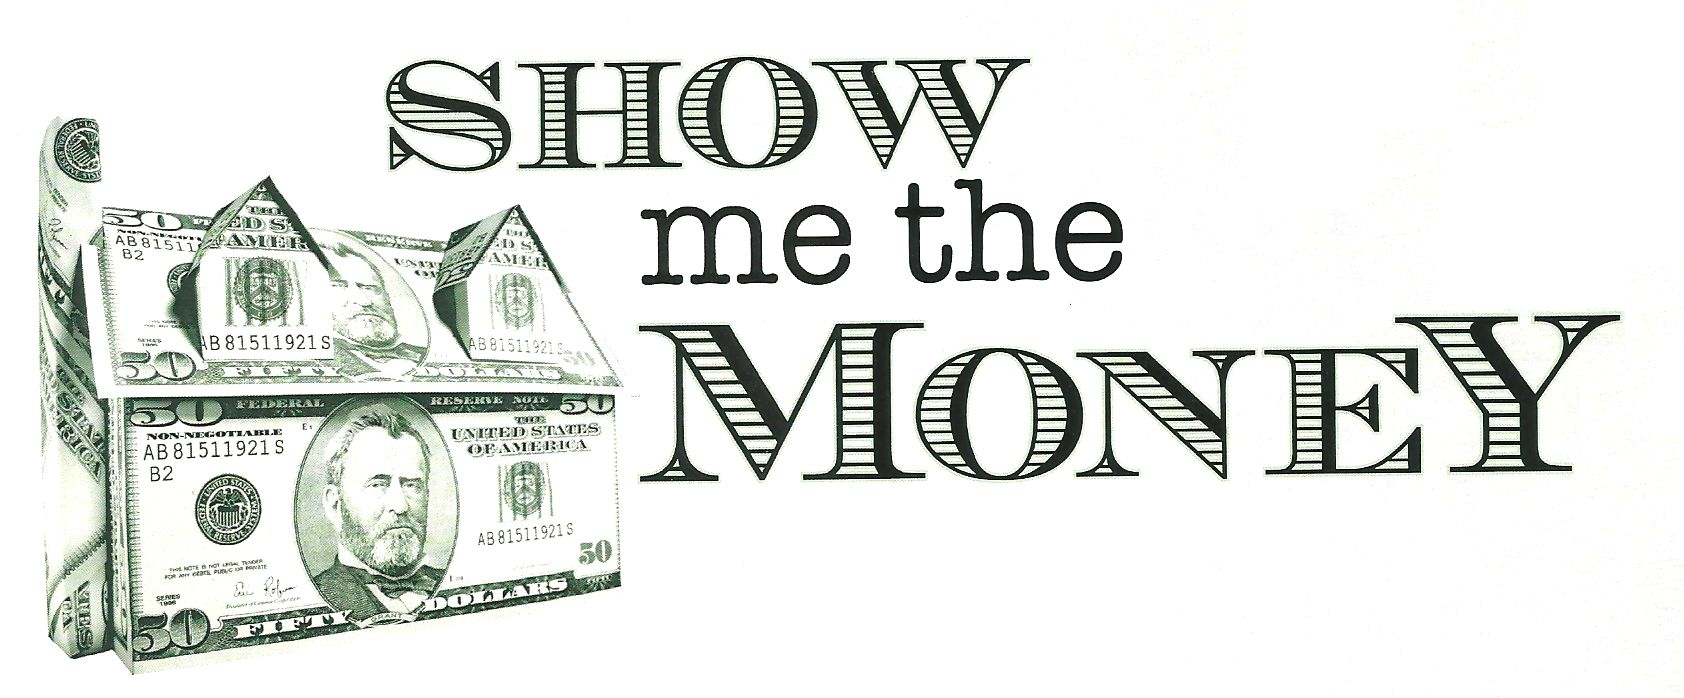 show-me-the-money-house-louisville-graphic-posted-mhpronews-com-